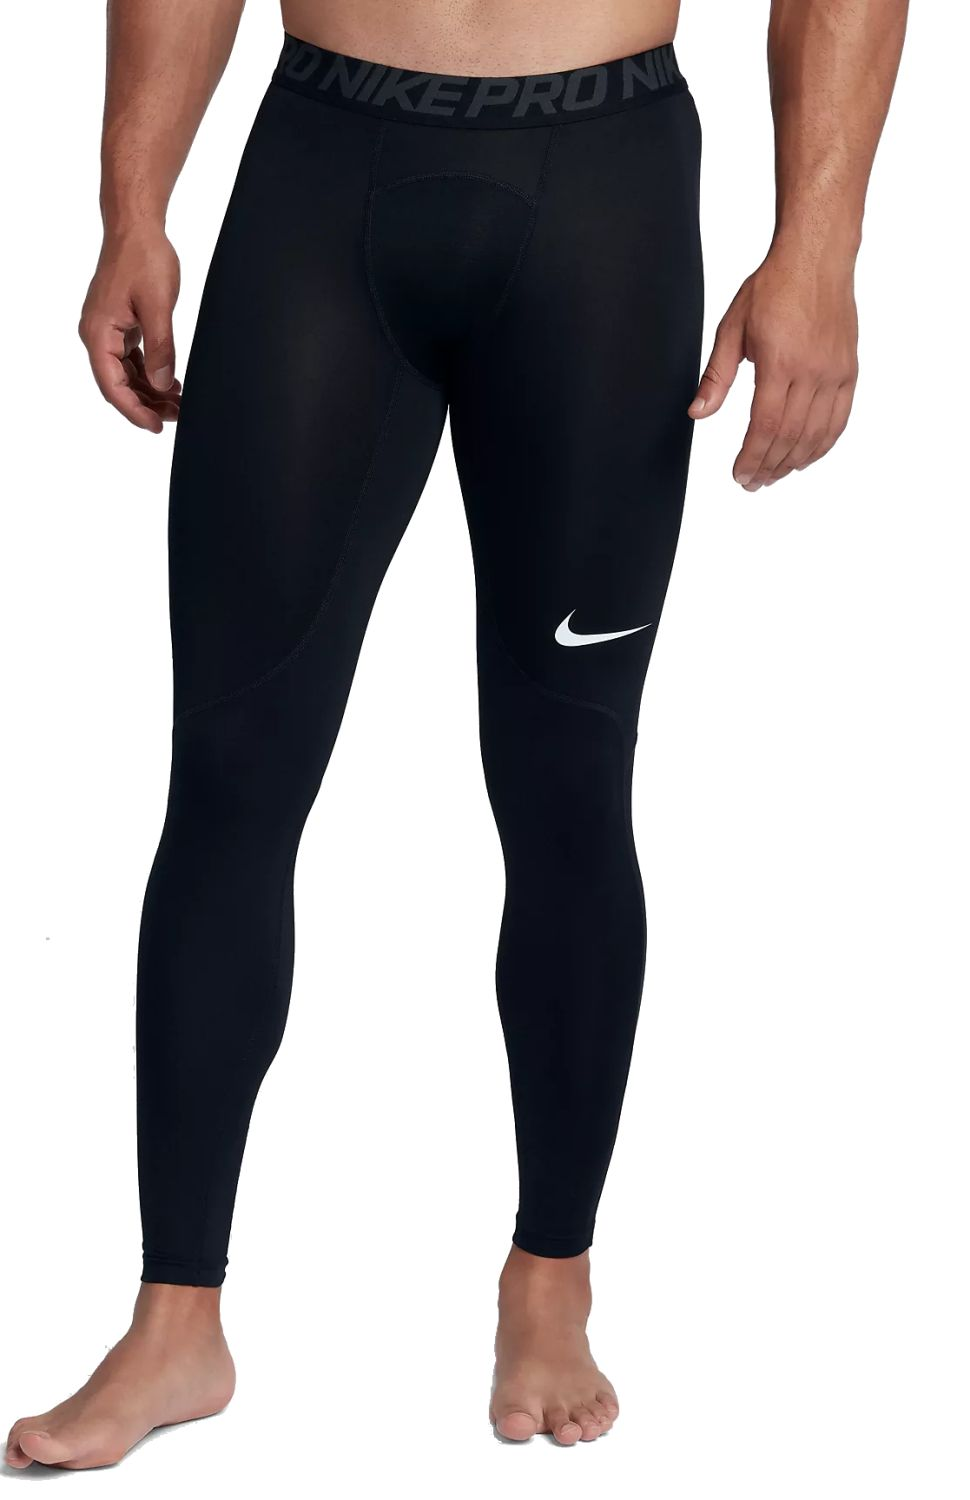 Nike Herren Trainings Fitness Hose NIKE PRO TIGHT schwarz | eBay